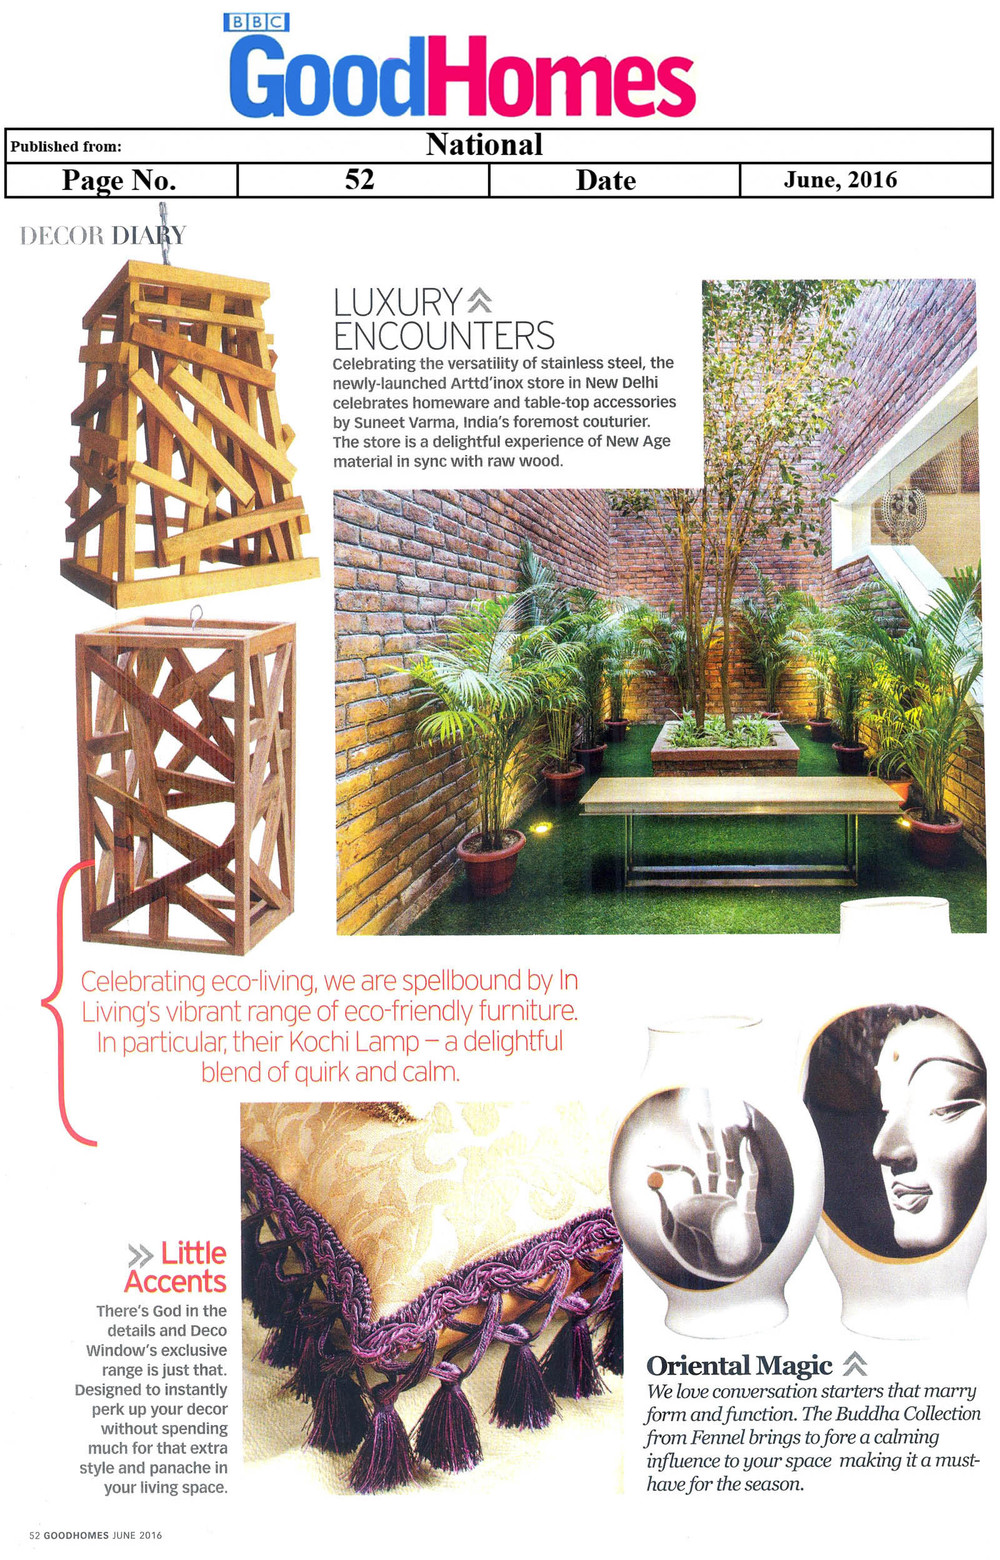 Inliving - Good Homes - June 2016 , pg no. 52.jpeg